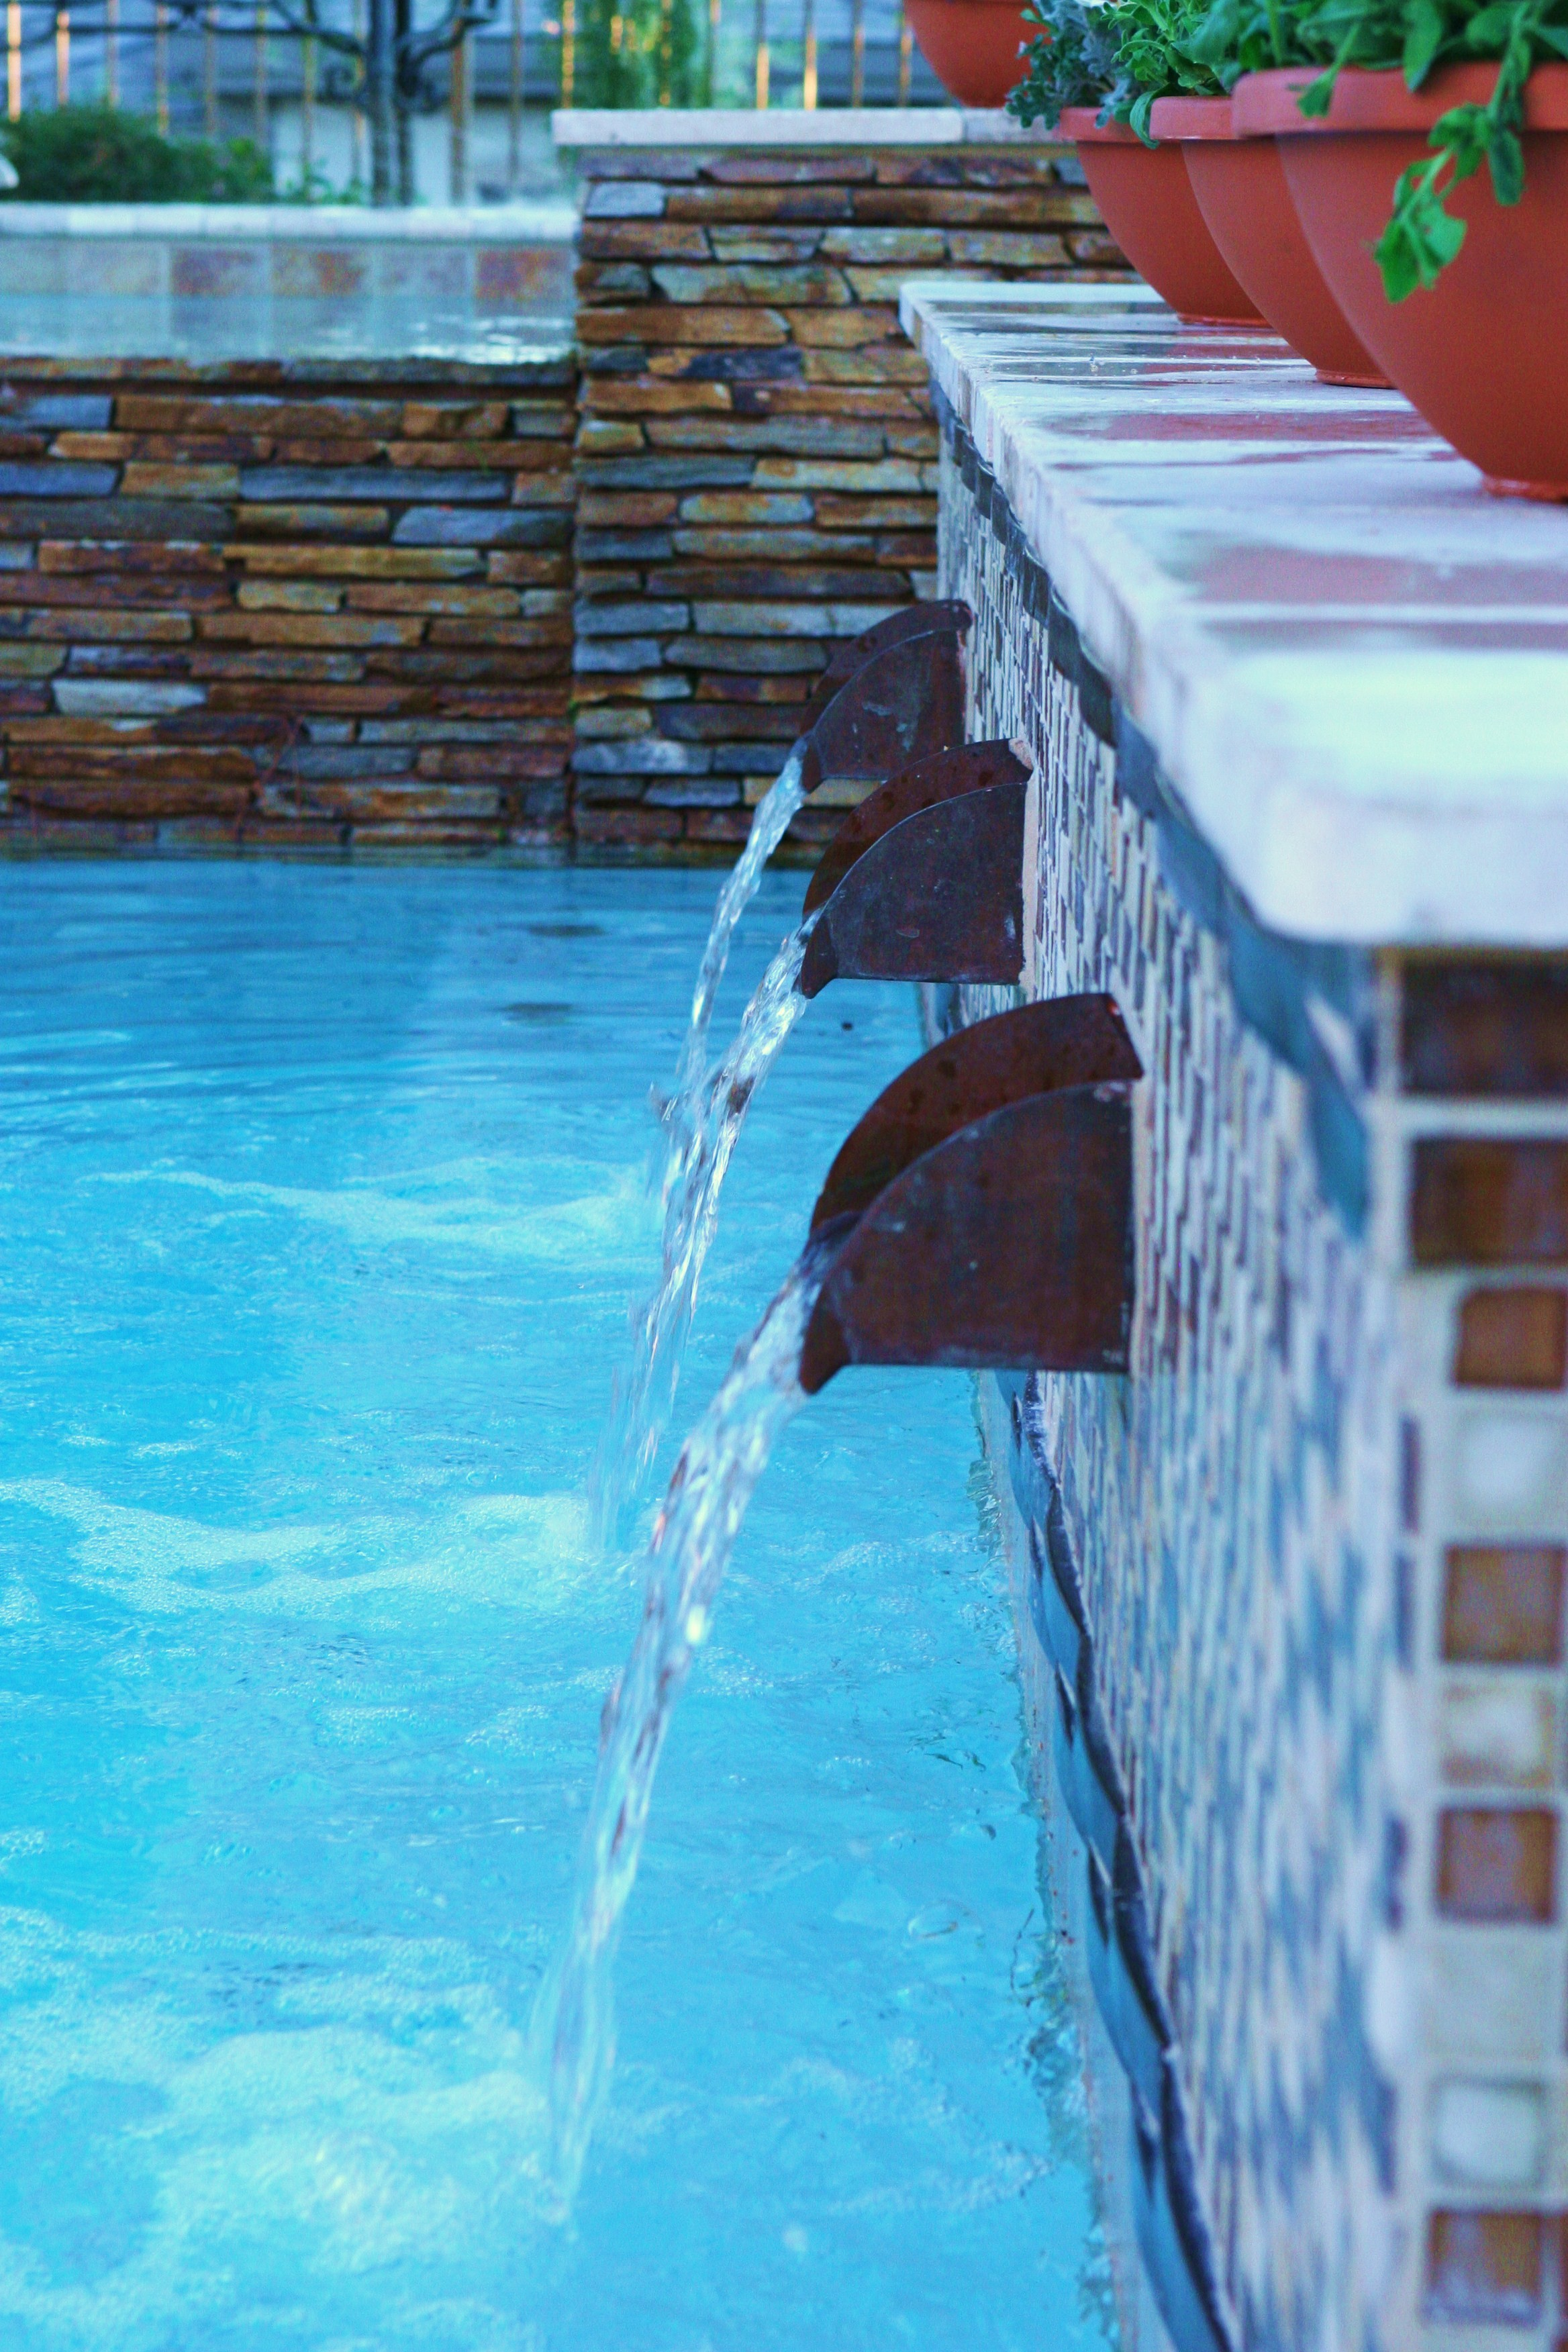 Pool Design Las Vegas Las Vegas Pool Design Pool Contractor Pool Builder Pool Construction